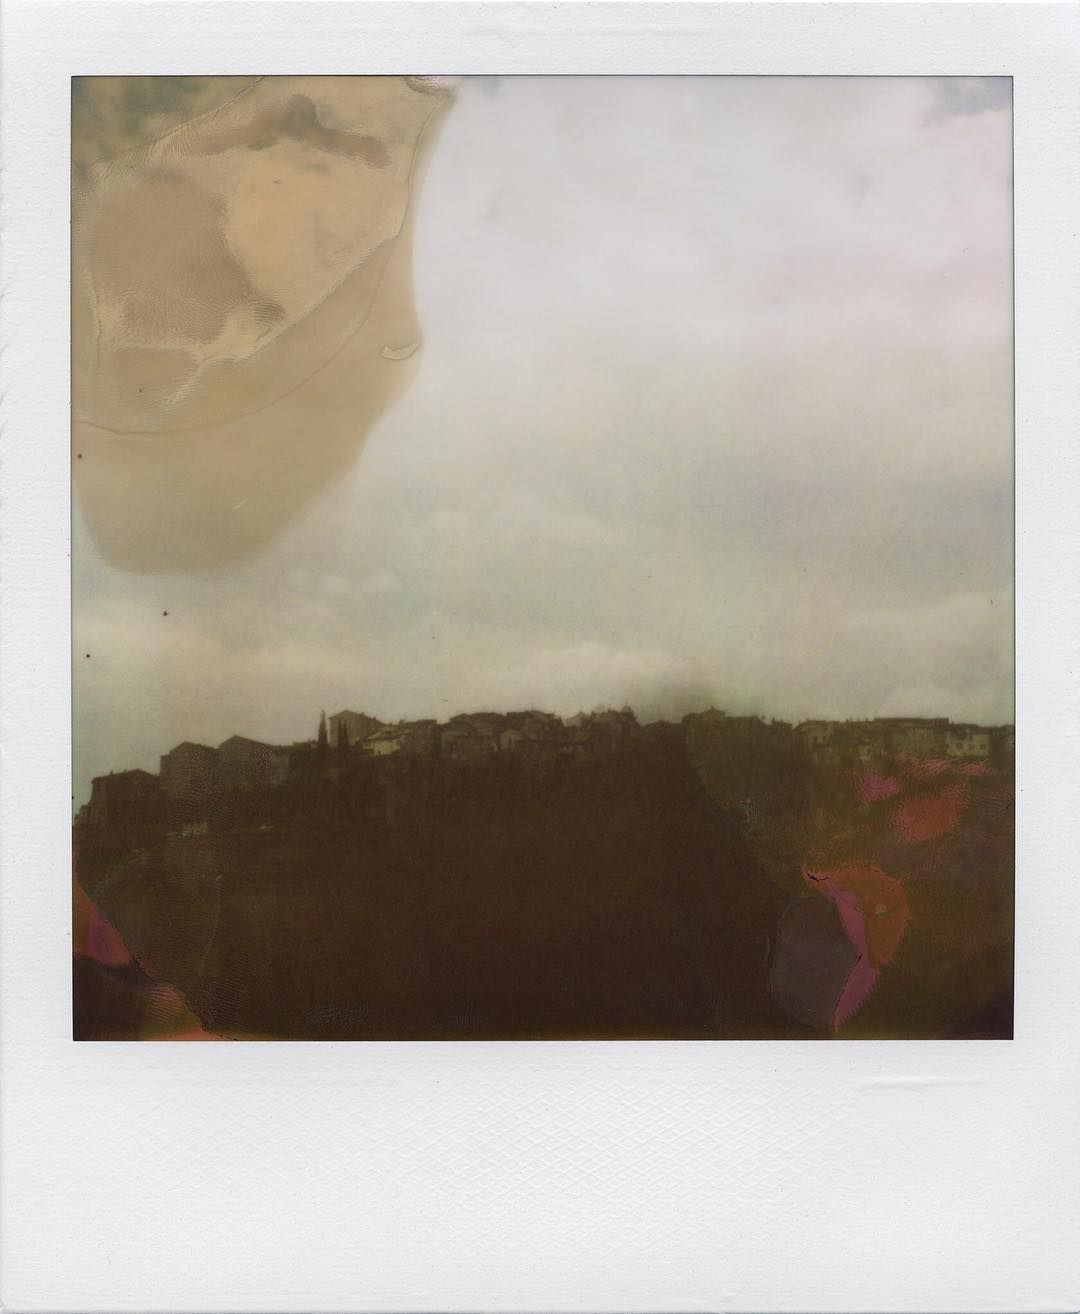 """Back in time (#Volterra 03/2010) #InstantPhotography #BelieveInFilm  Volterra on top of its beautiful hill through beautiful chemical blotches. Previously only available on my book """"Collected Instant Photography - Book Three 2010"""" at http://bit.ly/28KhwTP  #Polaroid SLR680 camera  779 #instant film  #heyfsc #squaremag #resourcemag #thefilmcommunity #analogfeatures #instantfilm #PolaroidOfTheDay #PolaroidIsNotDead #analogfeatures #analoguelove #filmphotographic #polavoid #Italy #Tuscany…"""